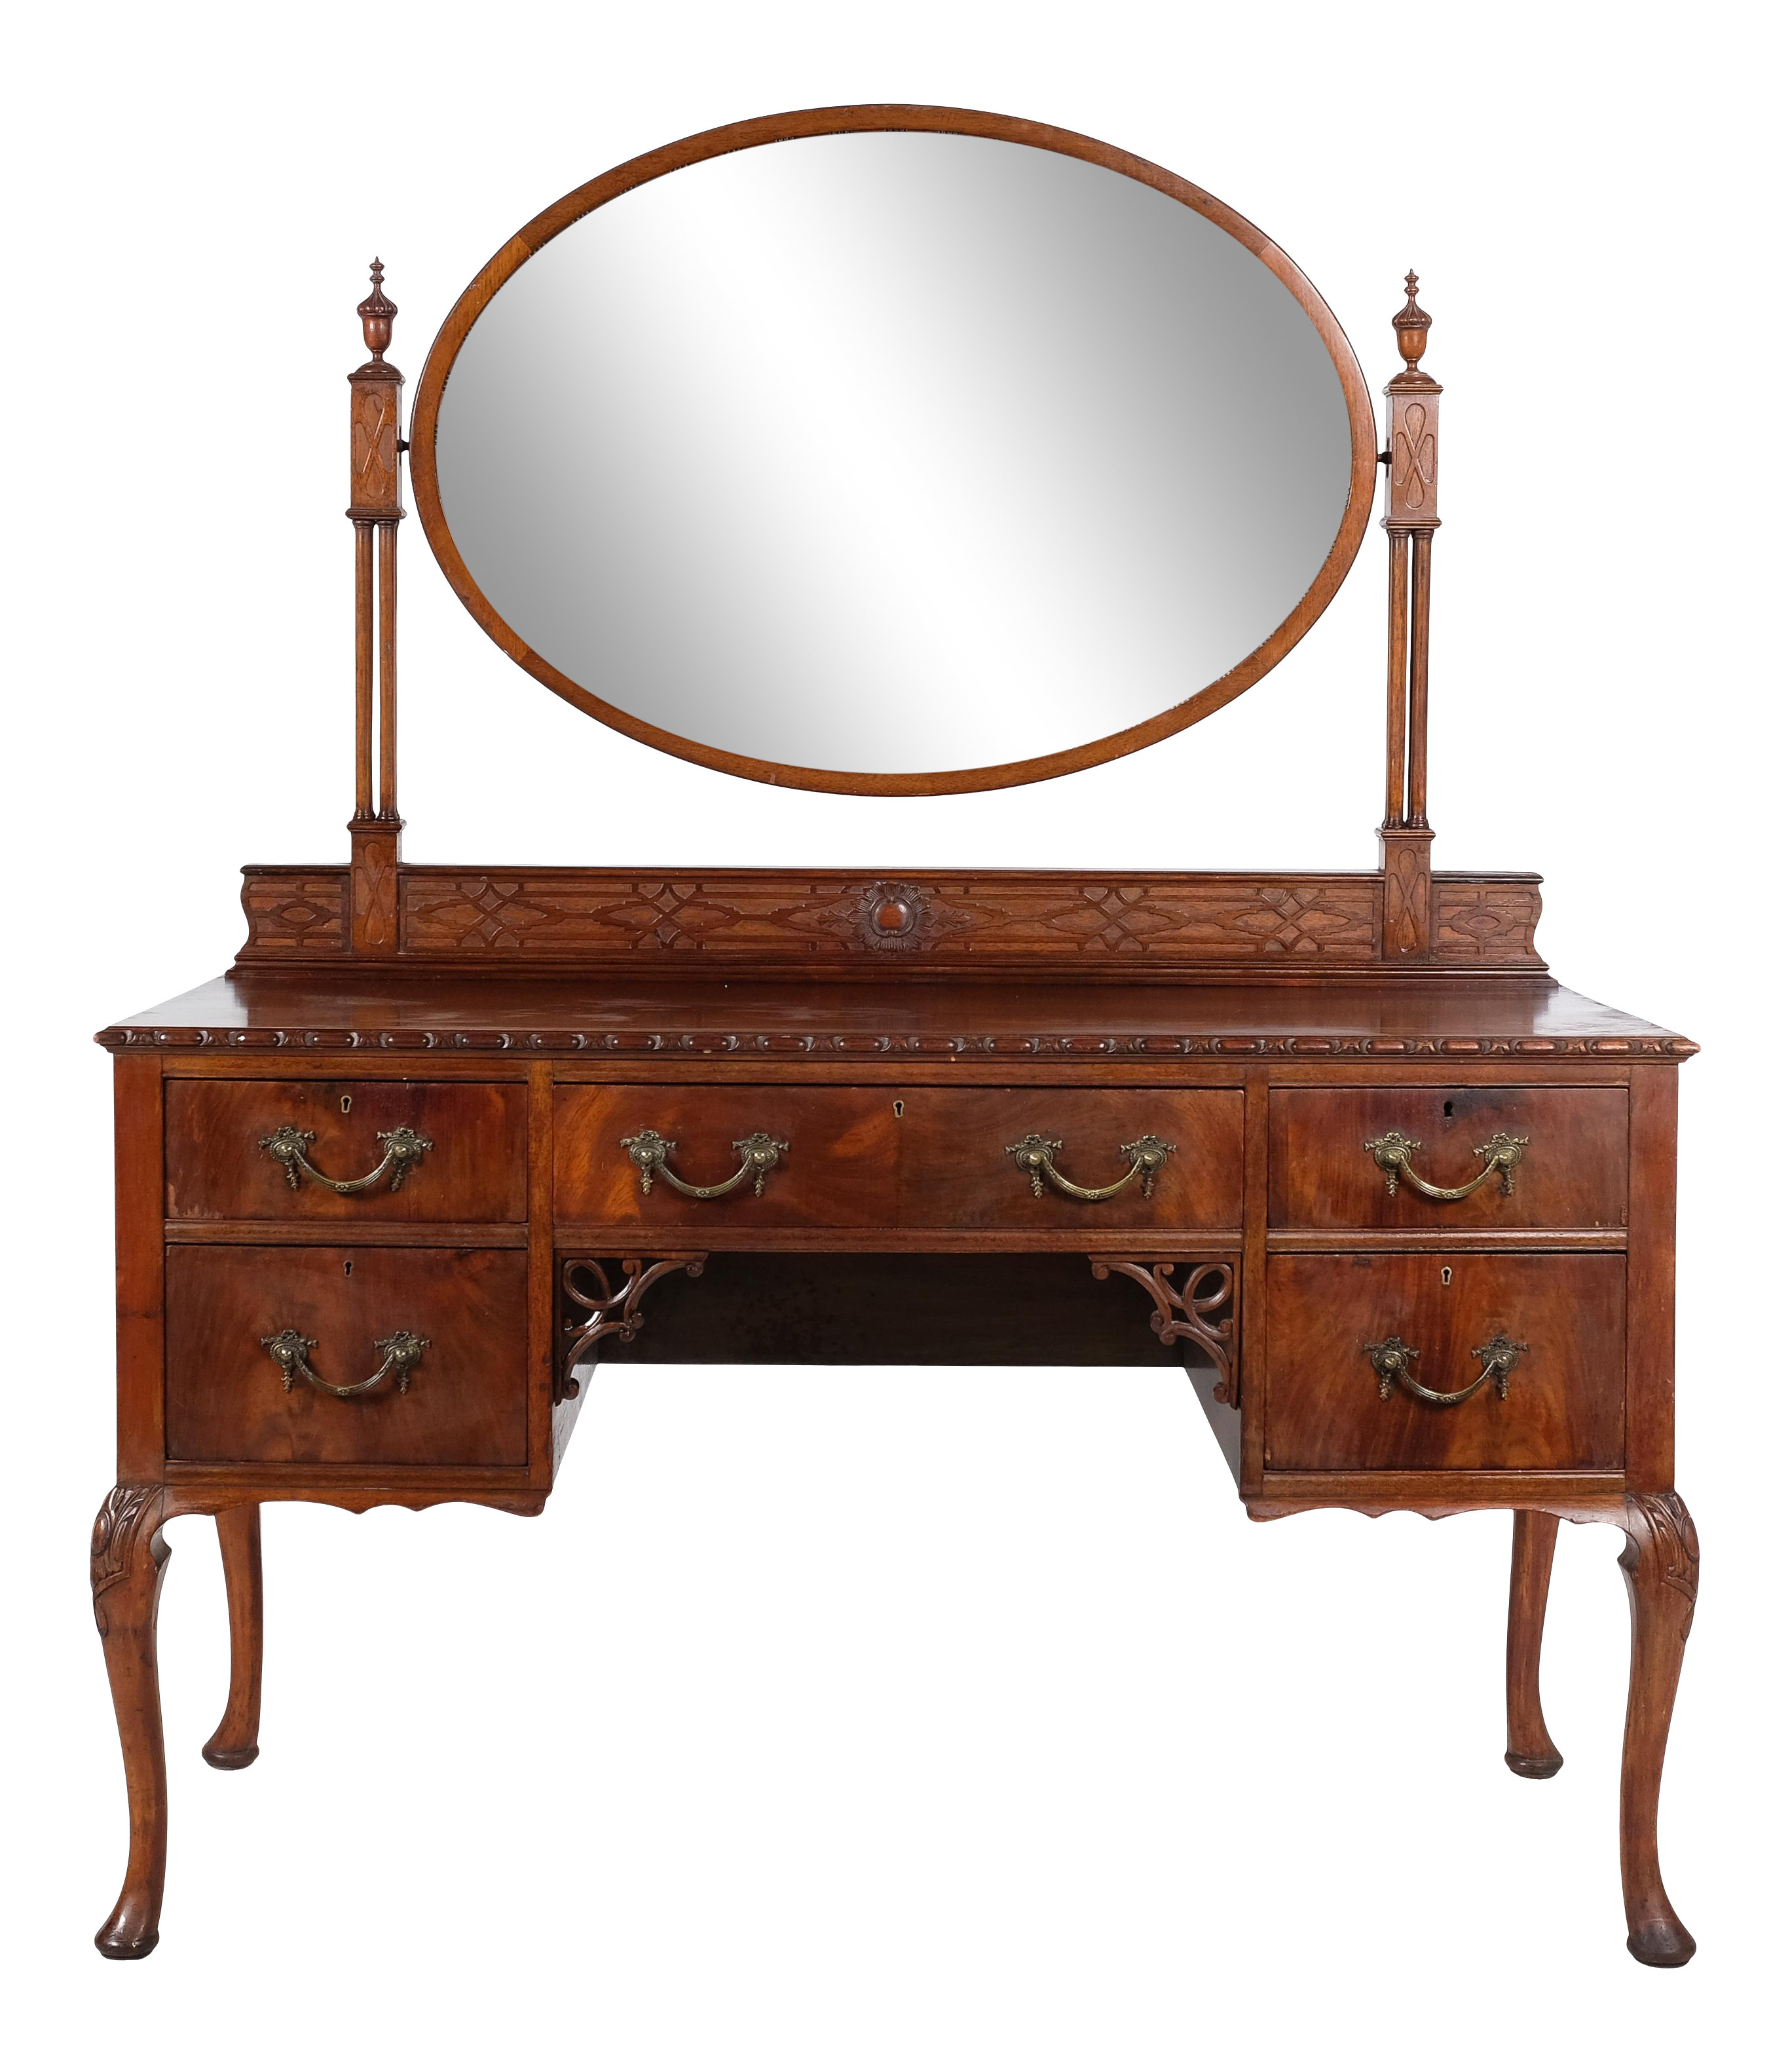 Queen Anne Mahogany Inlay Vanity With Mirror And Secret Compartments Chairish